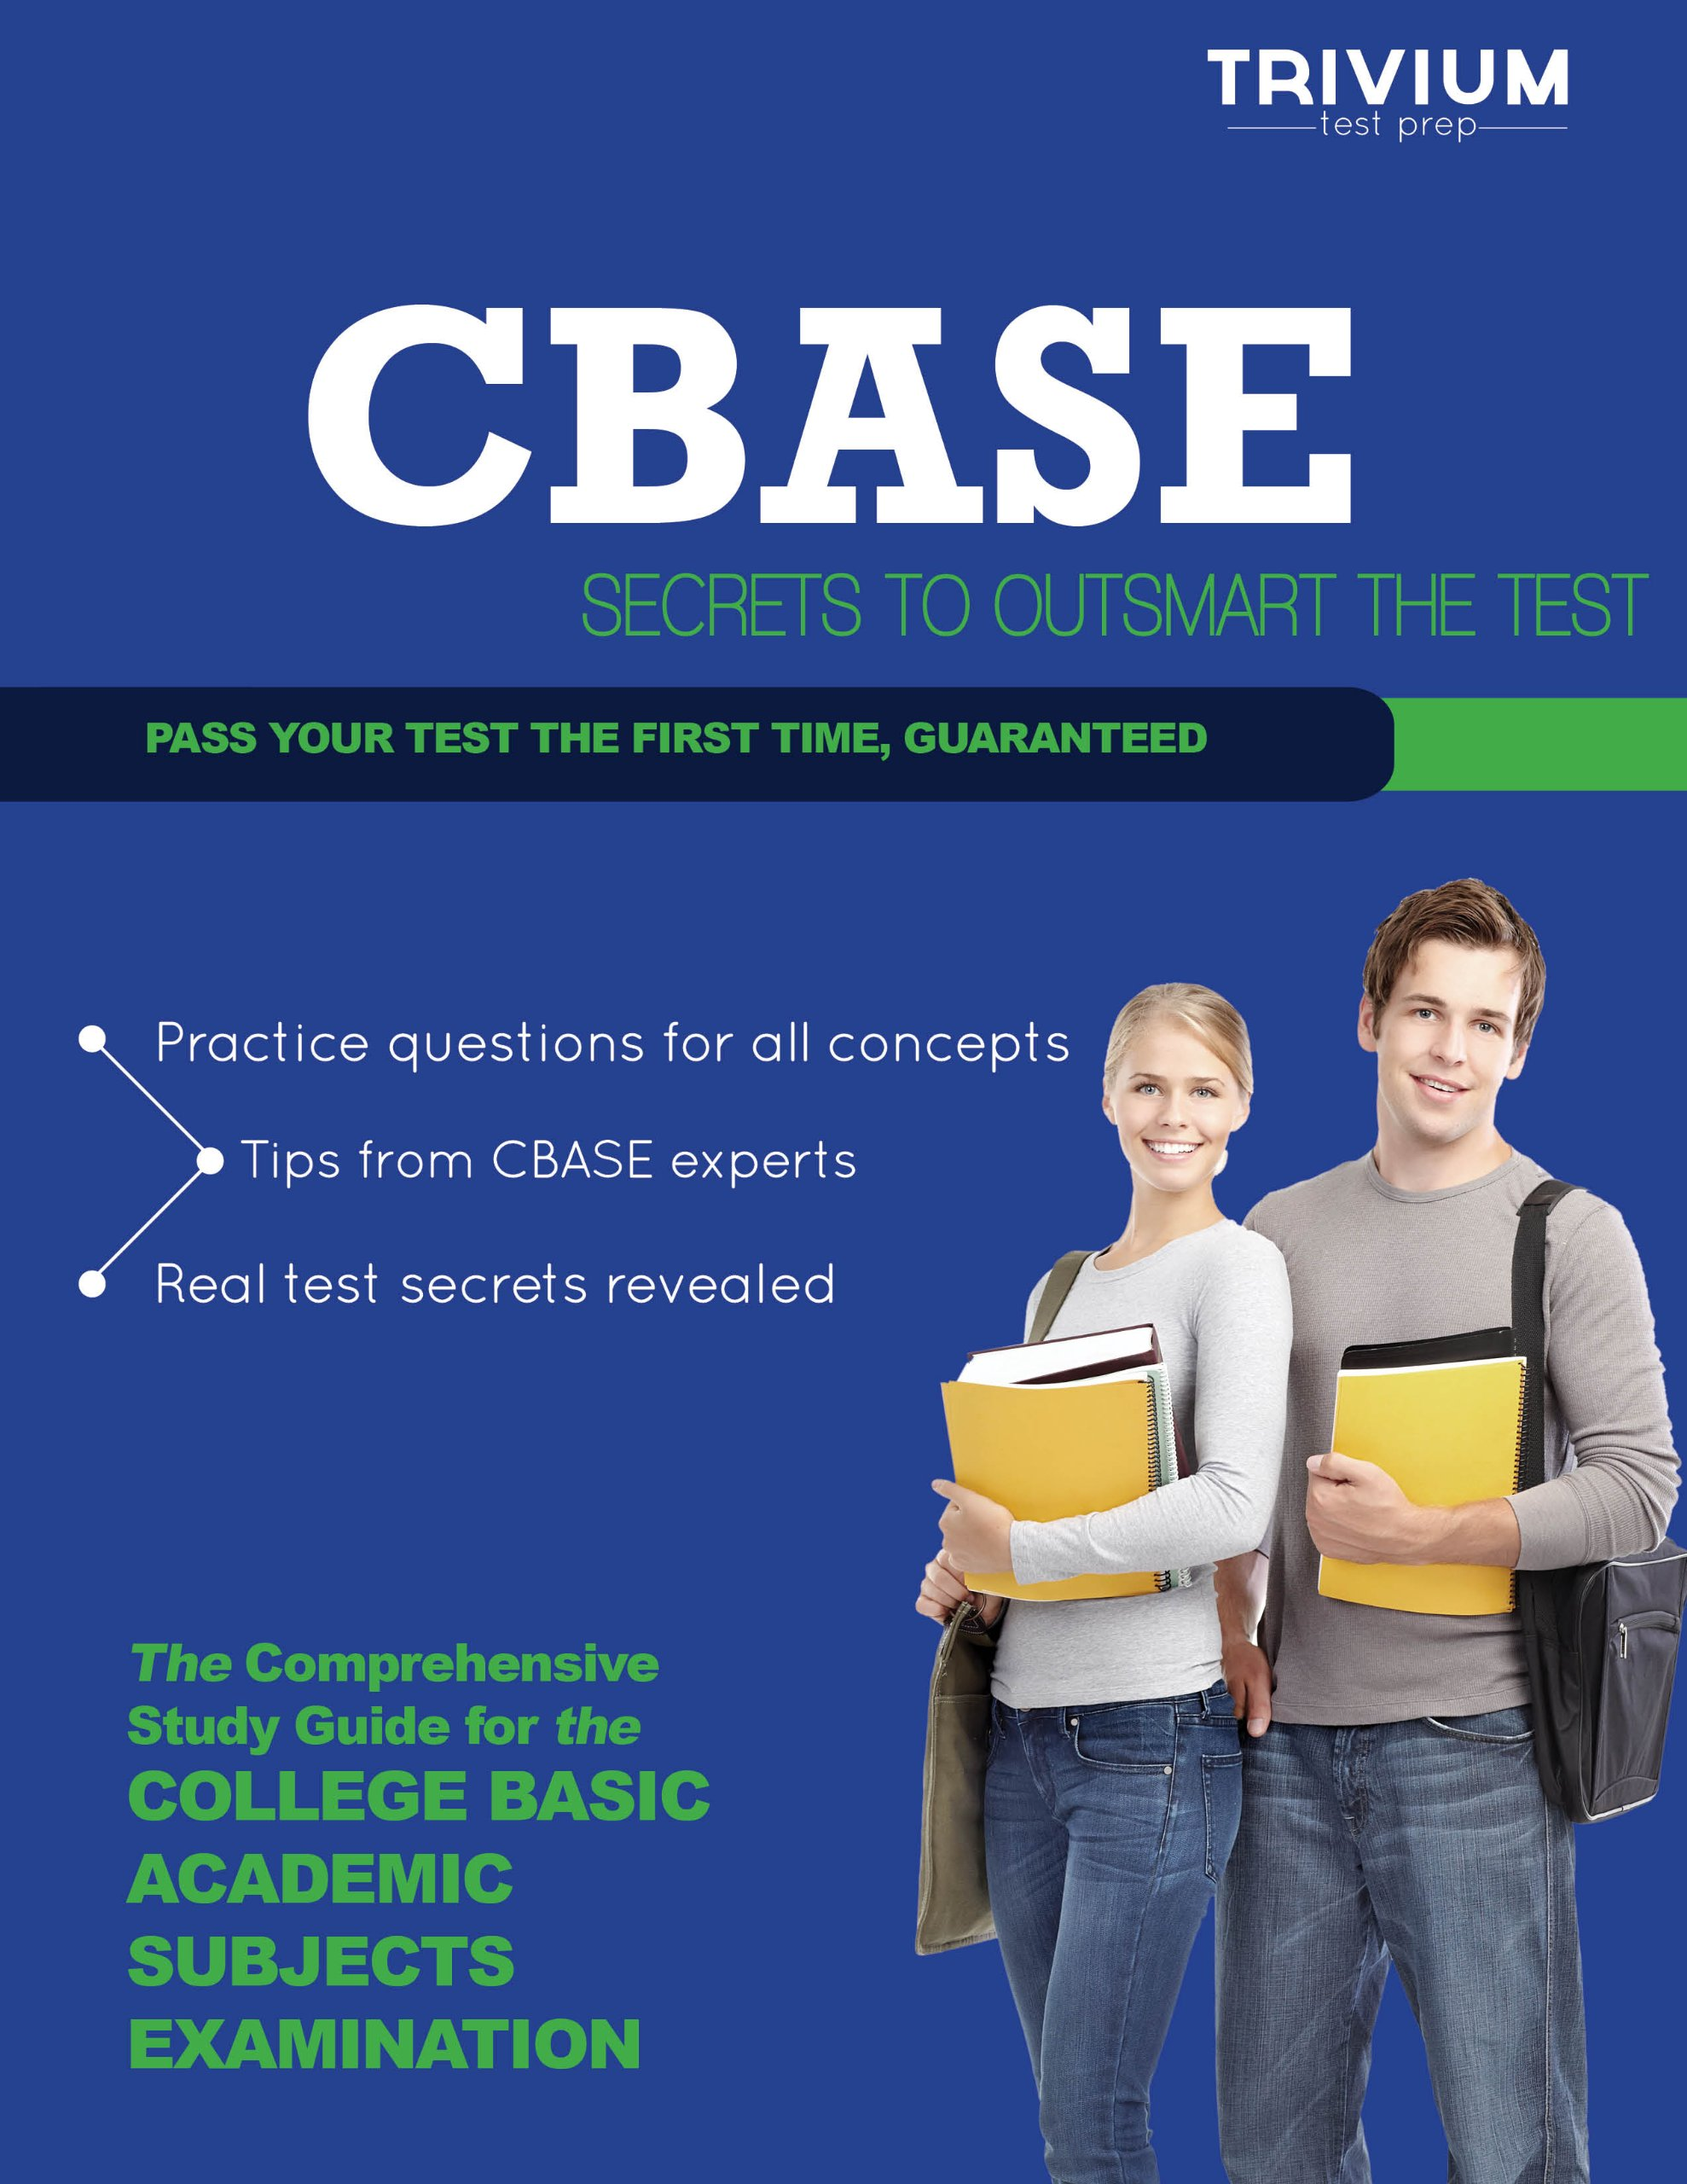 CBASE Study Guide 2013: Secrets to Outsmart the Exam: Trivium Test Prep  Research and Writing Team: 9781939587251: Amazon.com: Books